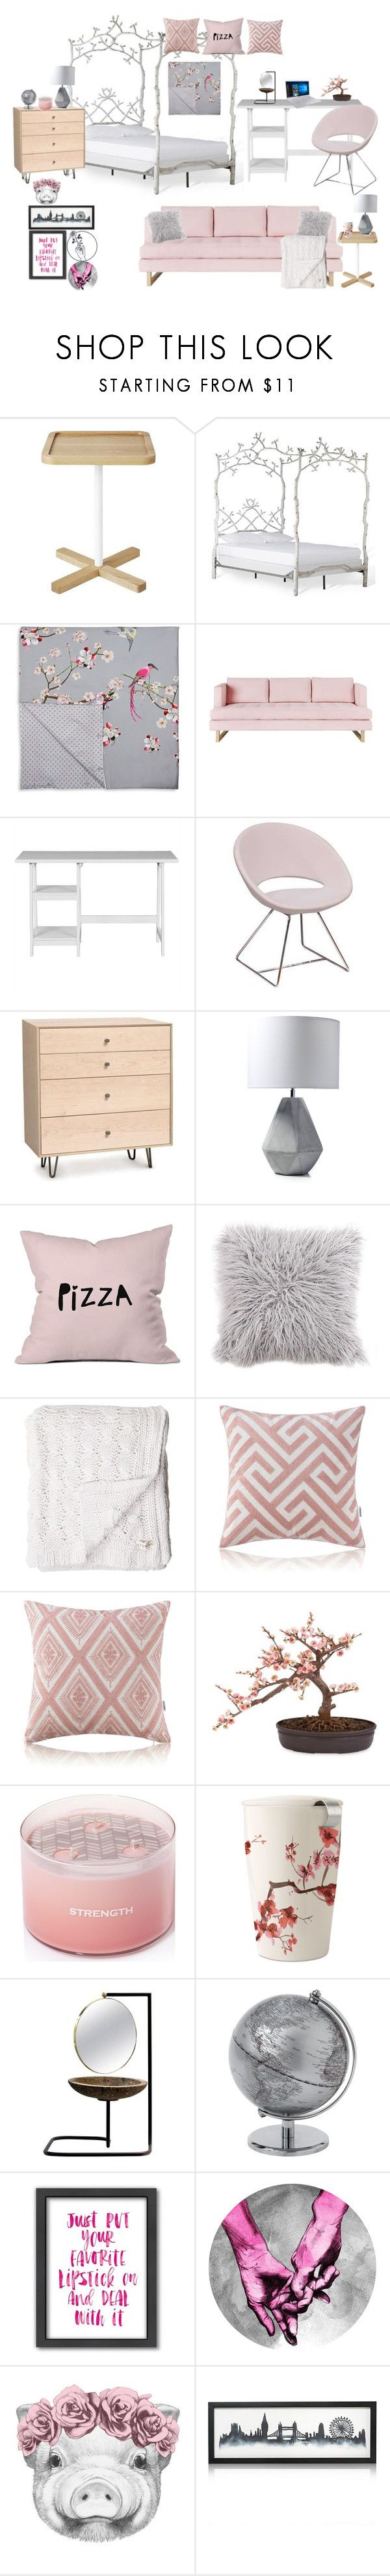 """2B"" by sarahc513 ❤ liked on Polyvore featuring interior, interiors, interior design, home, home decor, interior decorating, Gus* Modern, Ted Baker, Southern Enterprises and B&T"